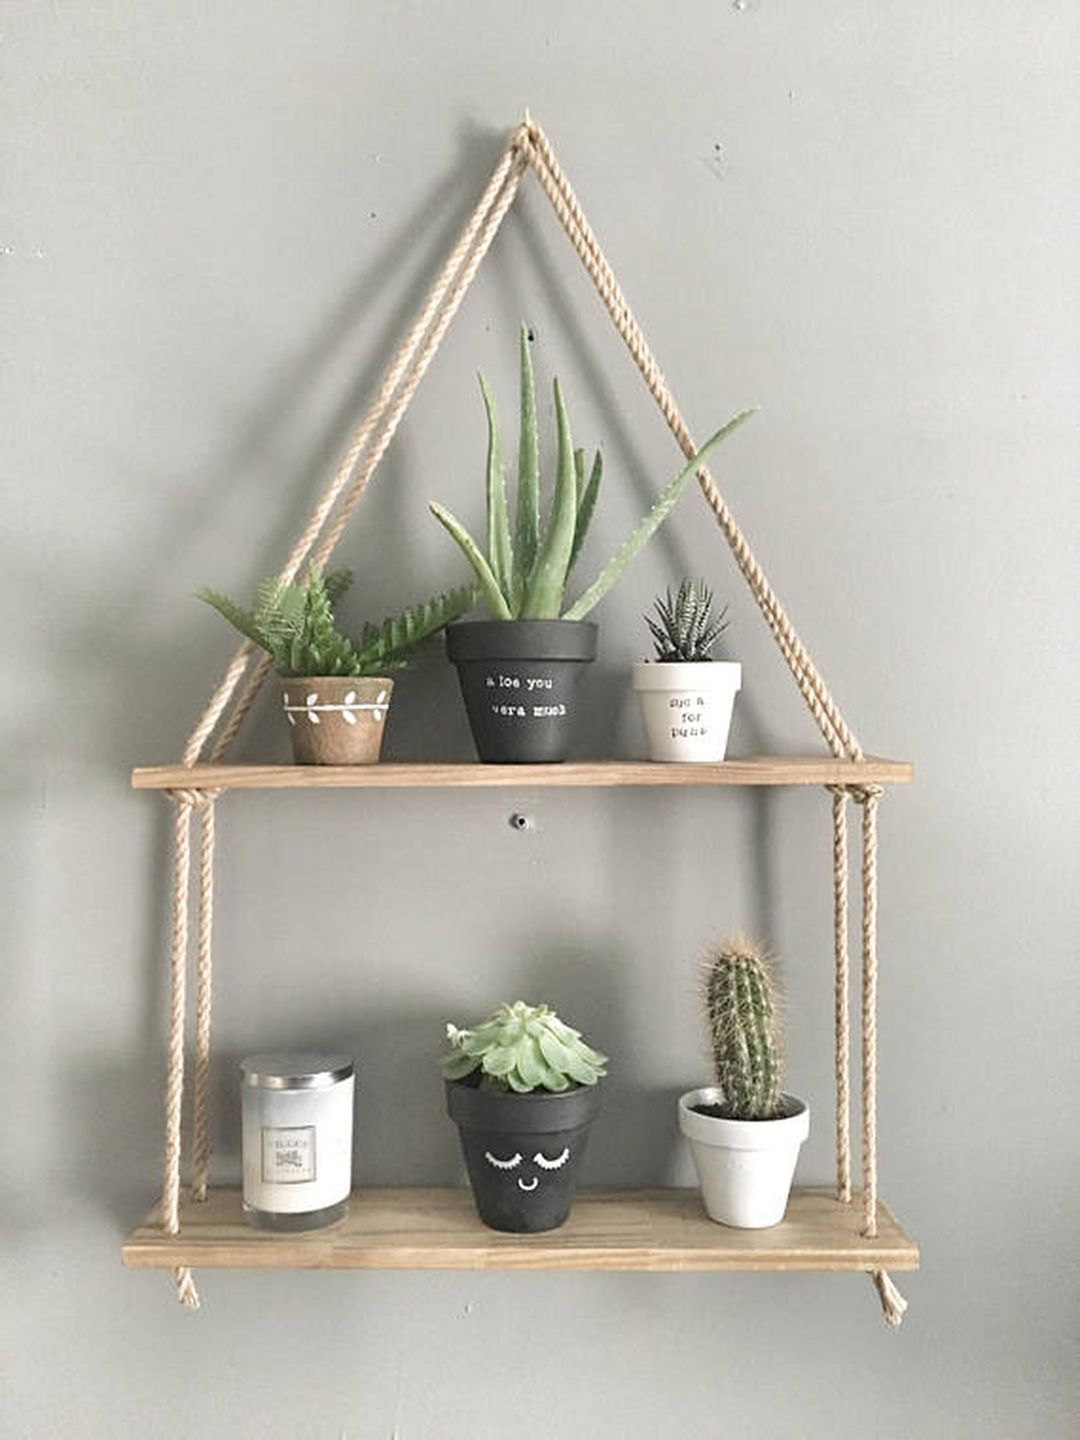 25+ Diy Hanging Shelves For Simple Storage And Beautiful Decor Ideas